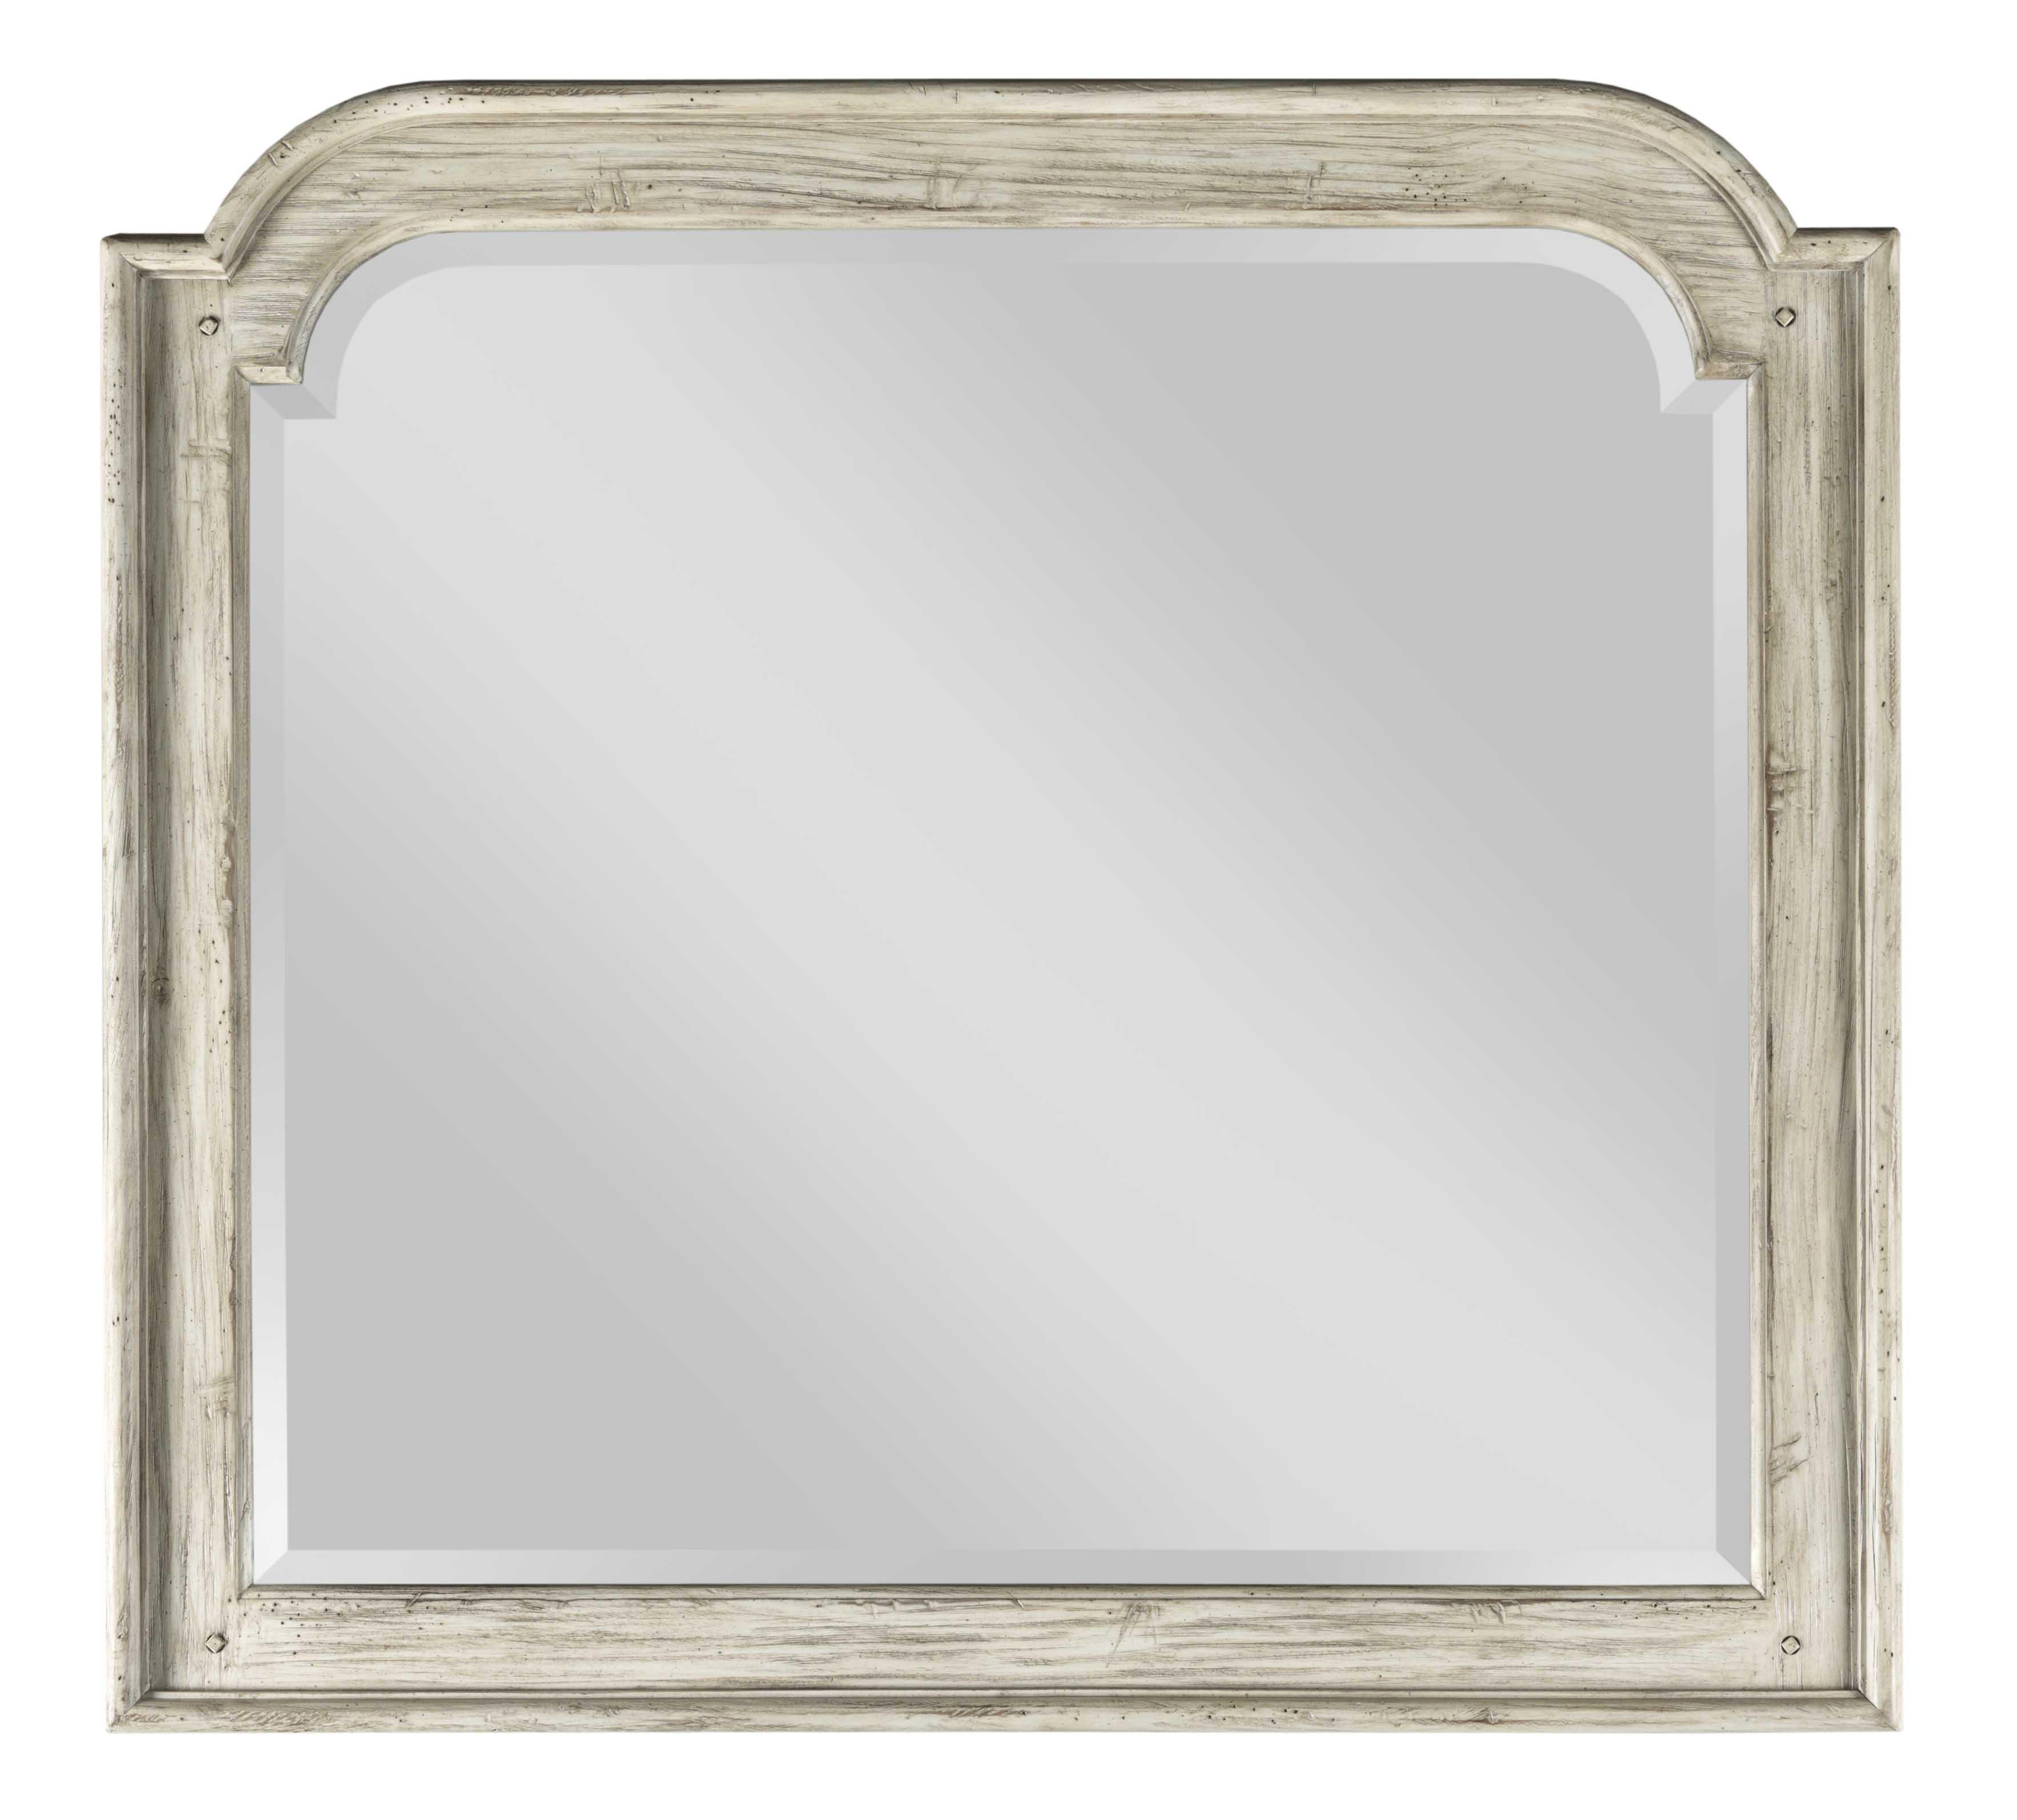 Kincaid Furniture Weatherford Westland Mirror - Item Number: 75-118